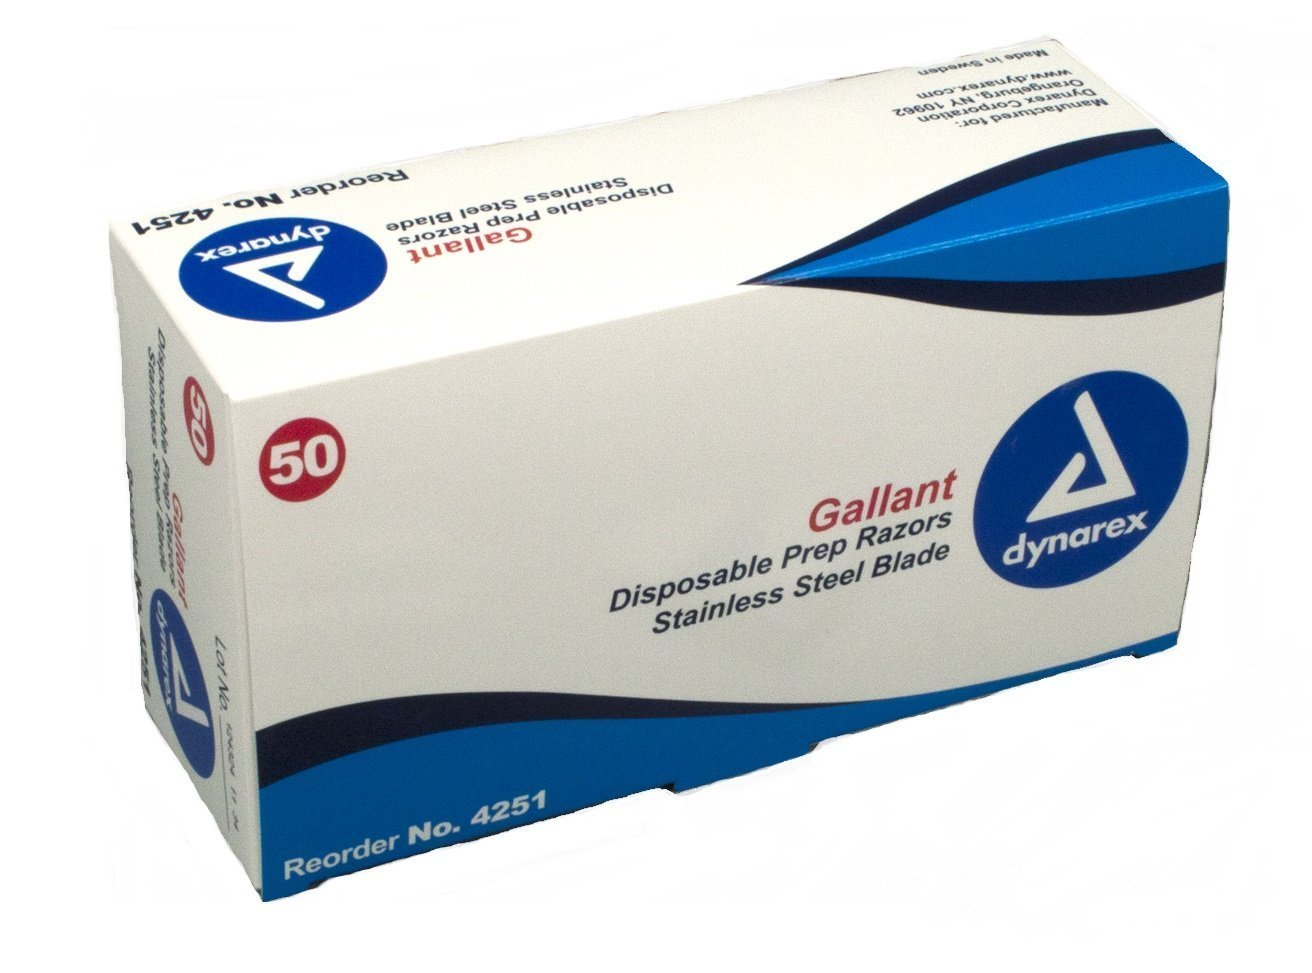 Disposable Gallant Prep Razor, Individually Foil-Packed, 50/bx Fieldtex Products No Model